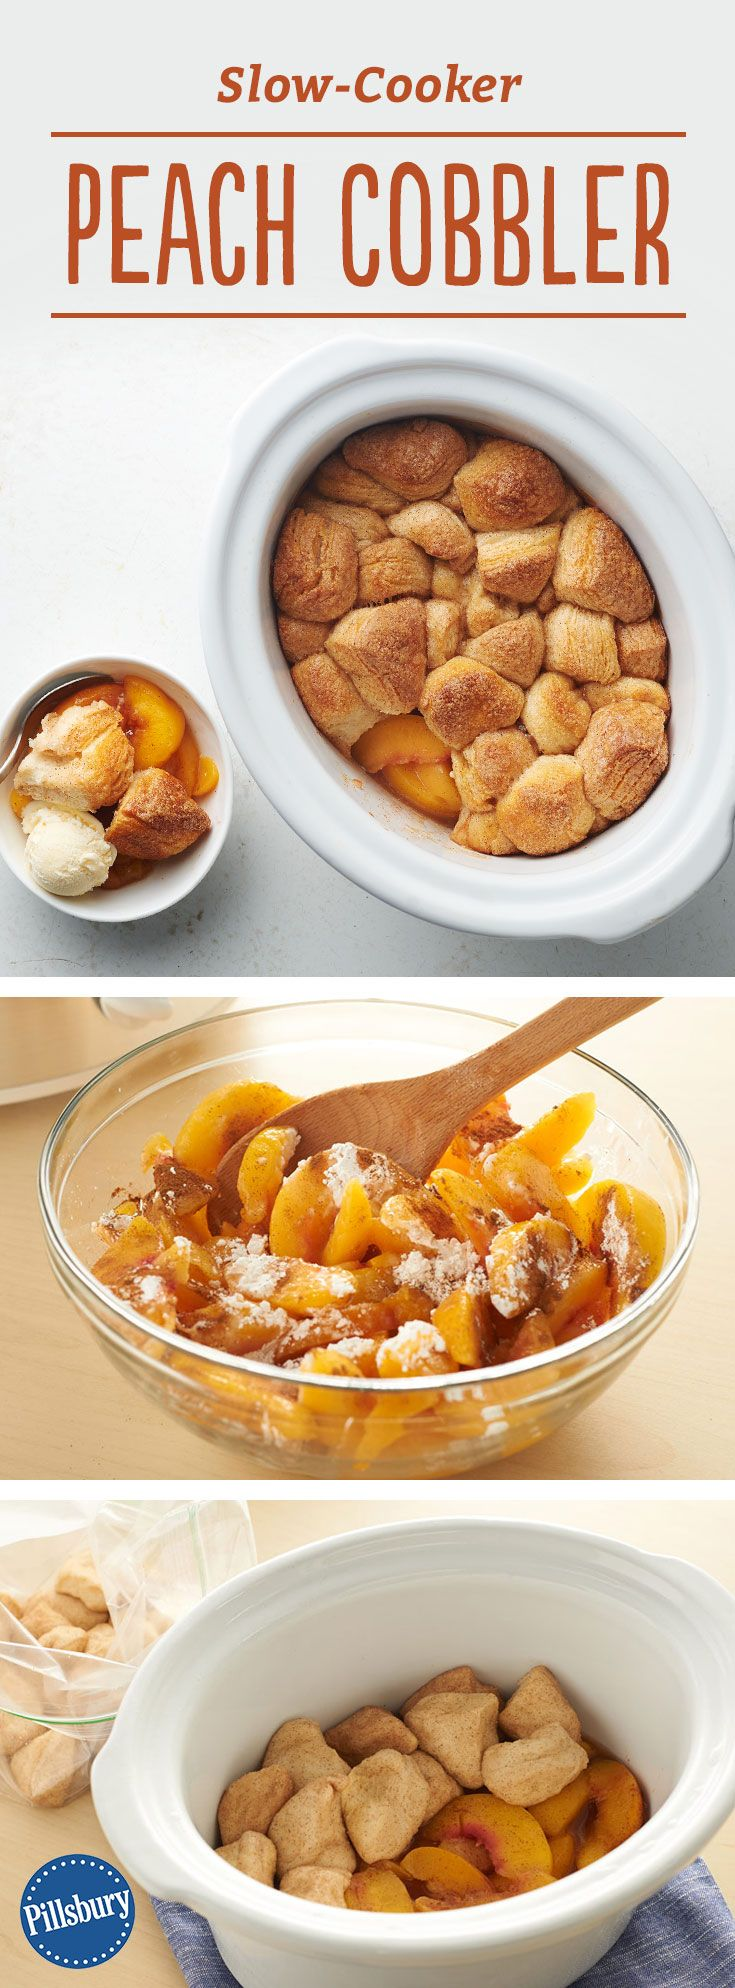 Slow-Cooker Peach Cobbler: This easy slow-cooker peach cobbler has just 5 ingredients and is finished in the oven for a delicious cinnamon and sugar biscuit-topped dessert.